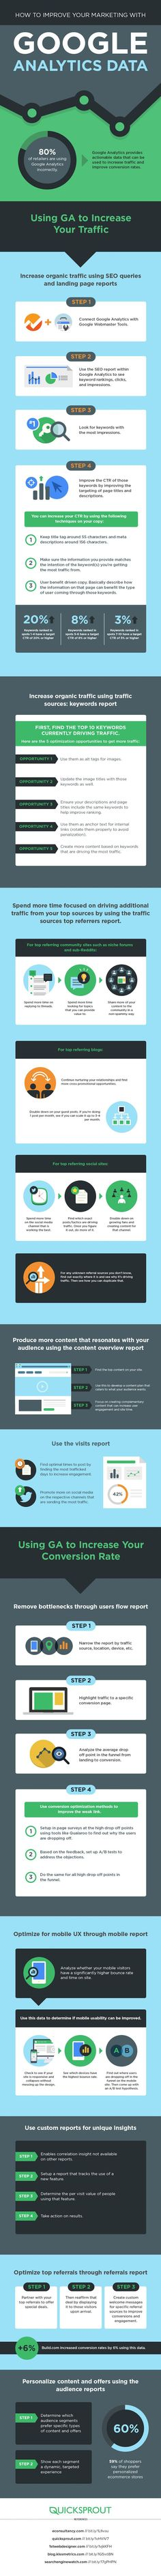 How To Improve Your Marketing With Google Analytics Data - #infographic: